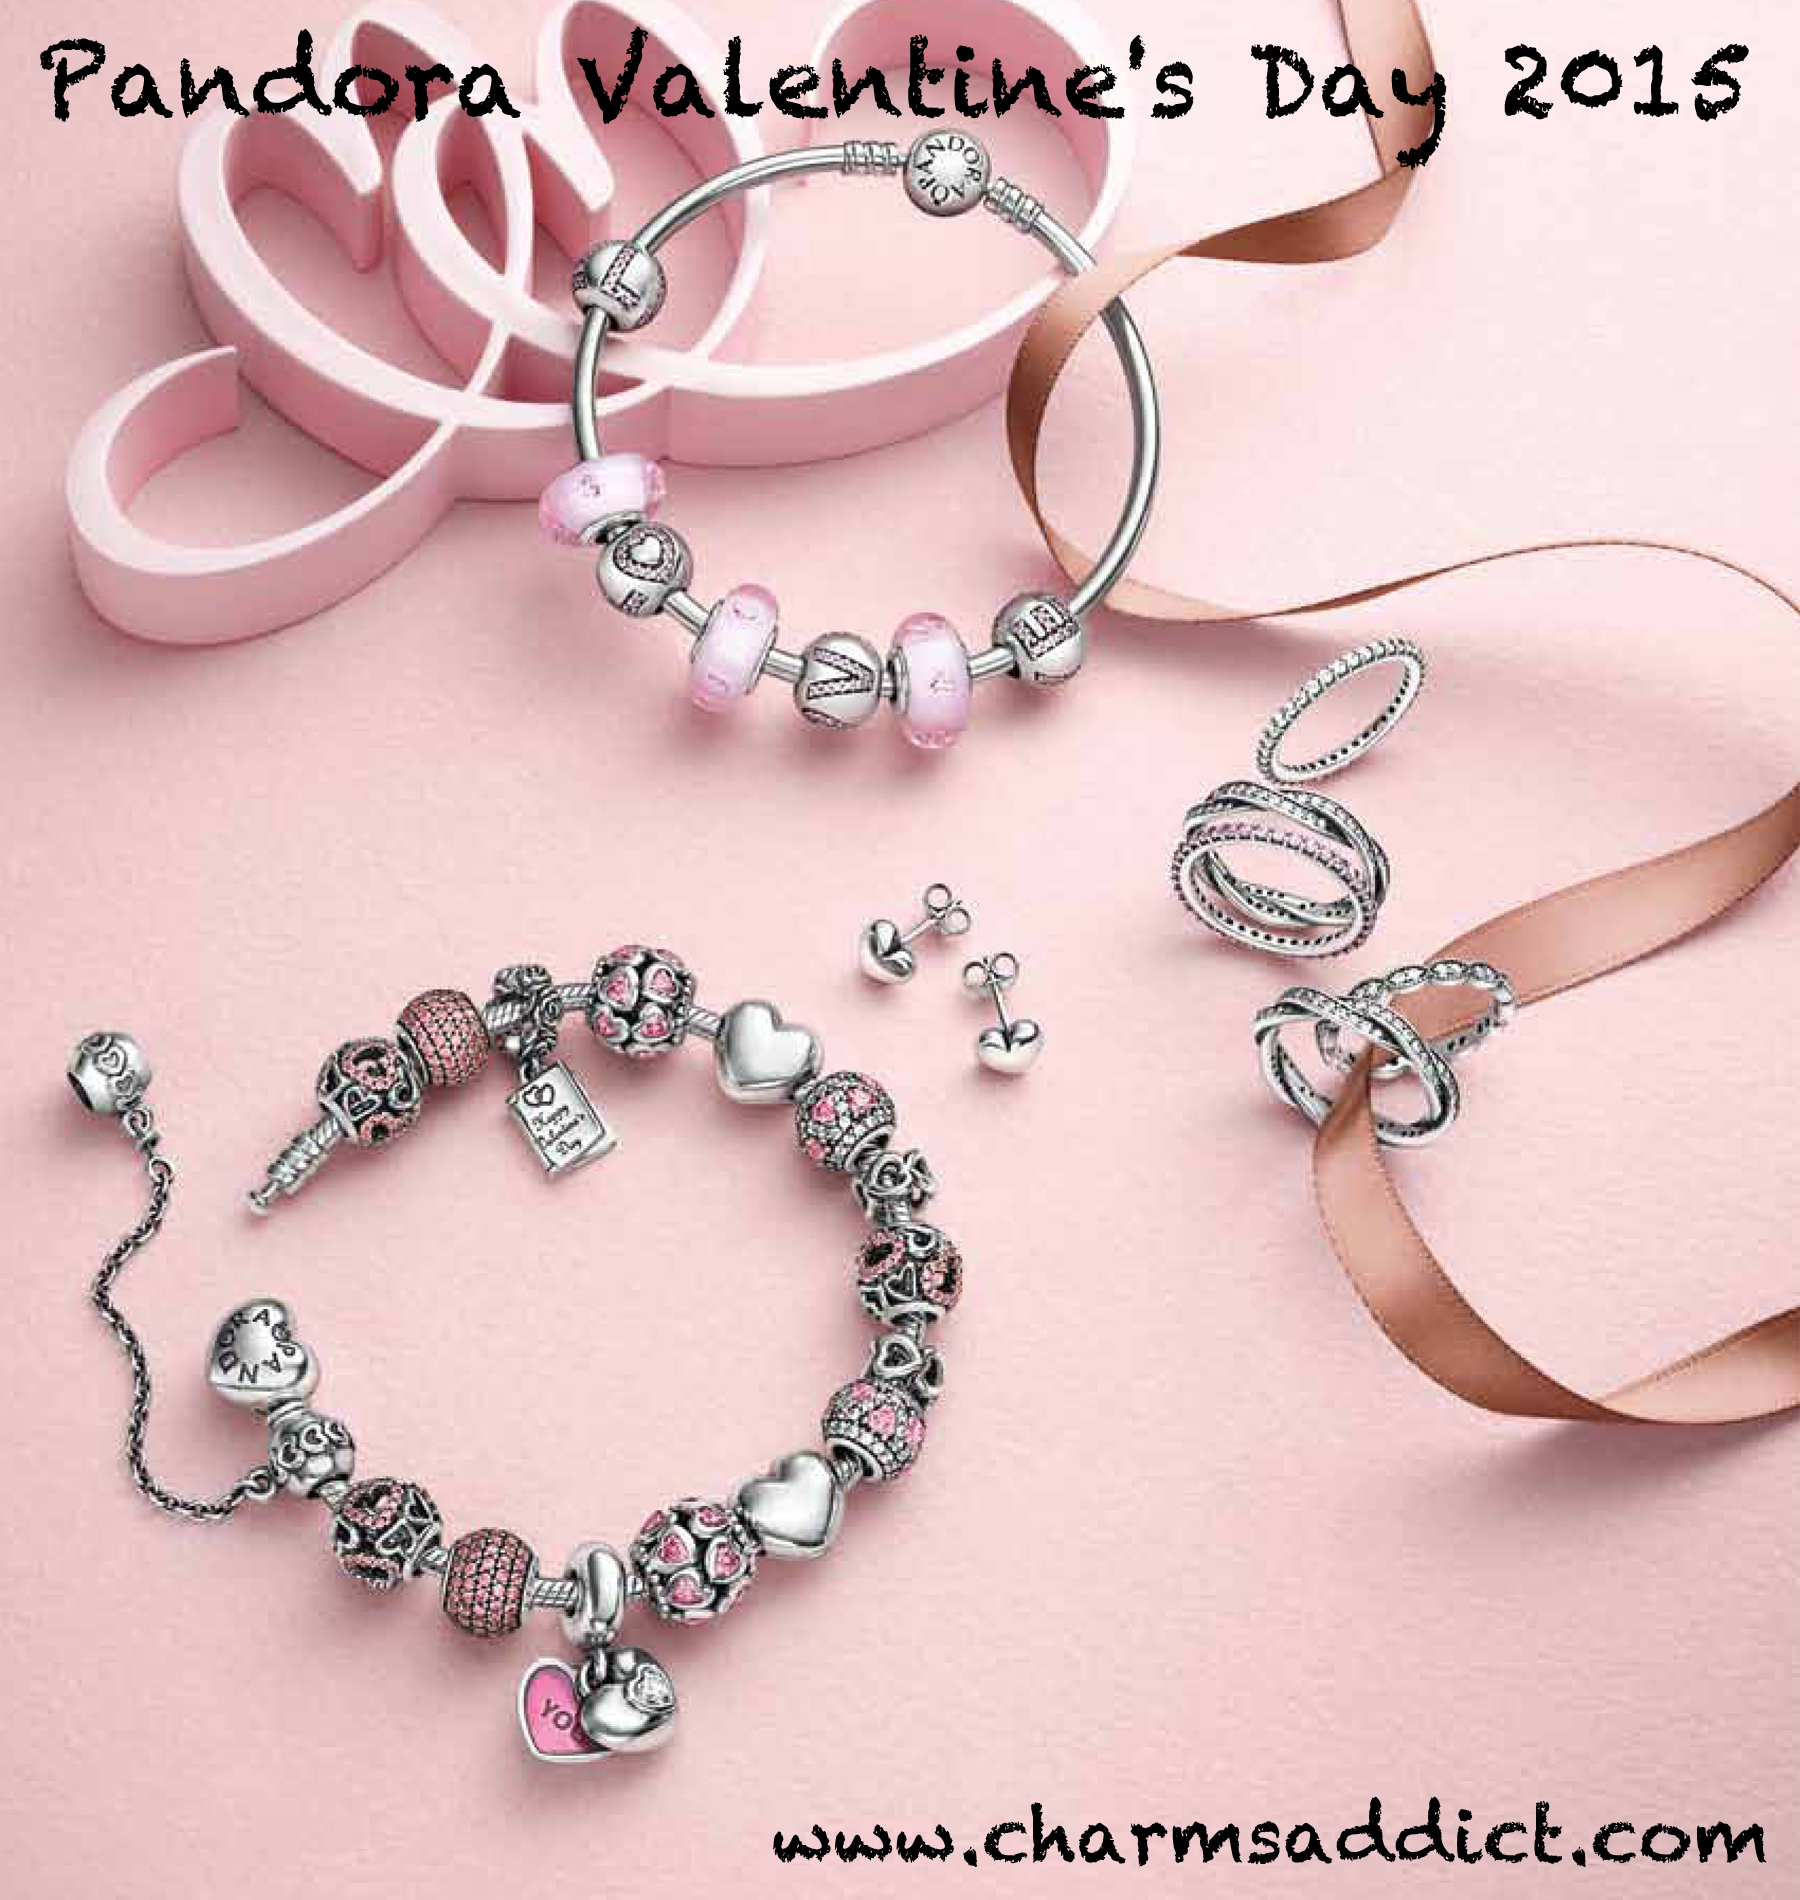 Pandora Valentines Day 2015 Collection Prices Charms Addict